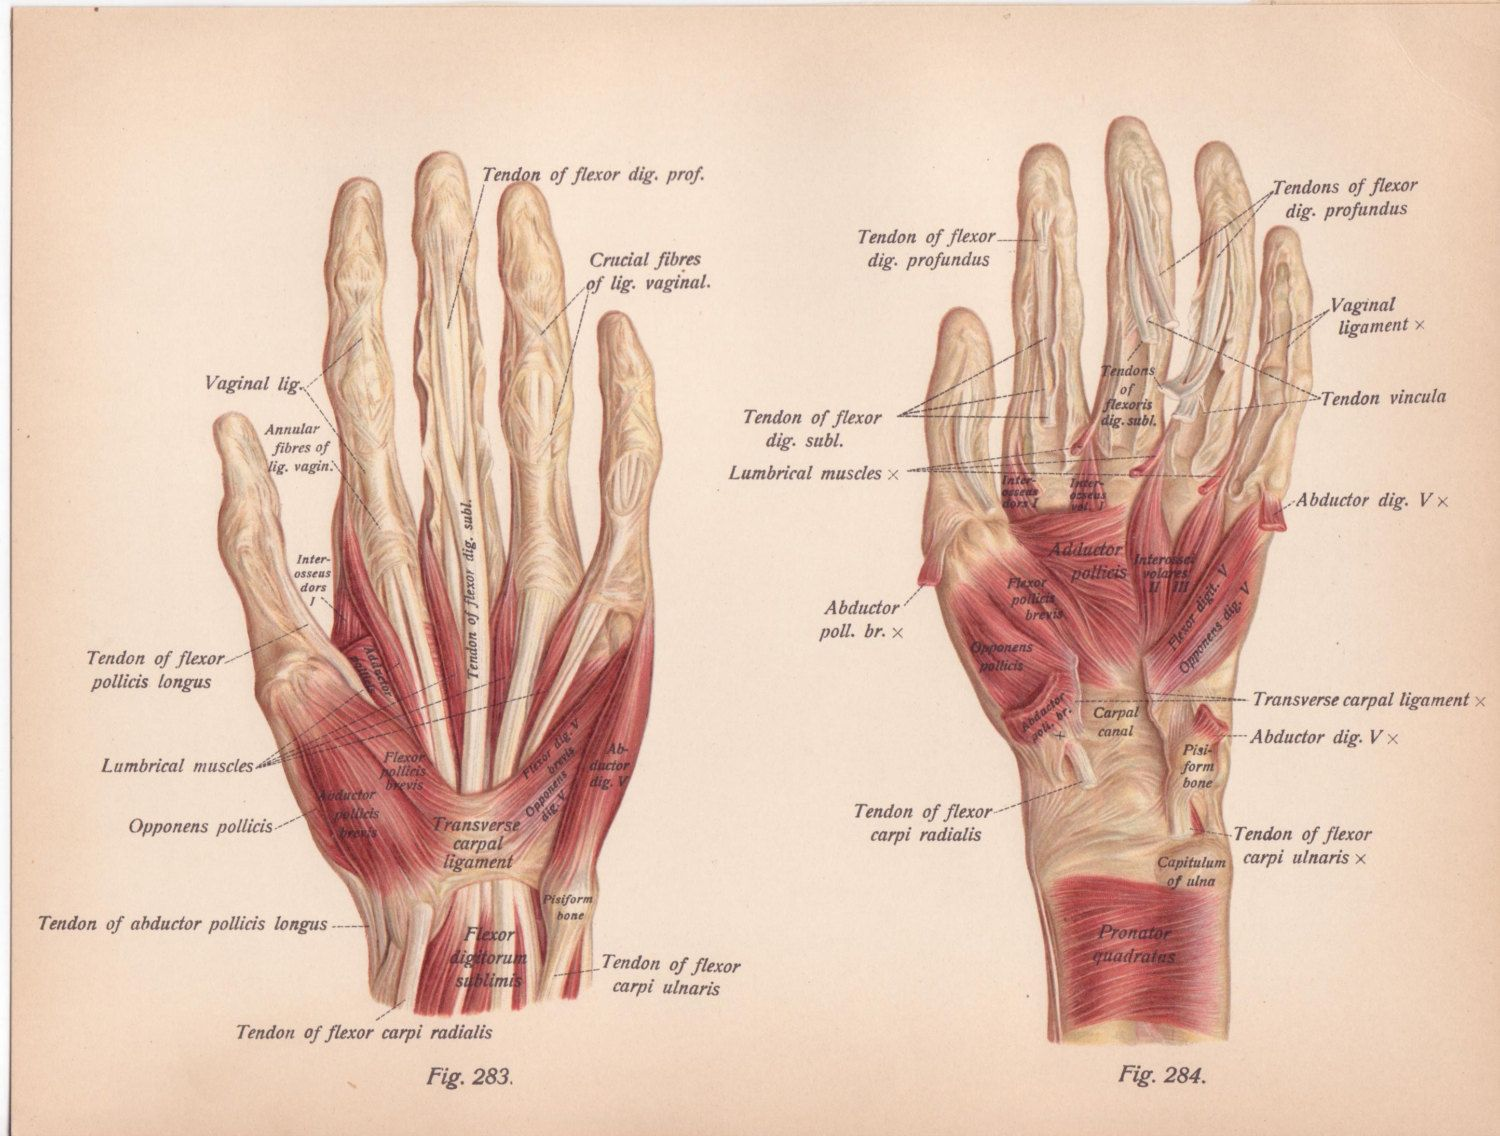 a20e151207eae3c4ce522abe01af6ee3 antique medical hand diagrams google search arm 'hand tattoo